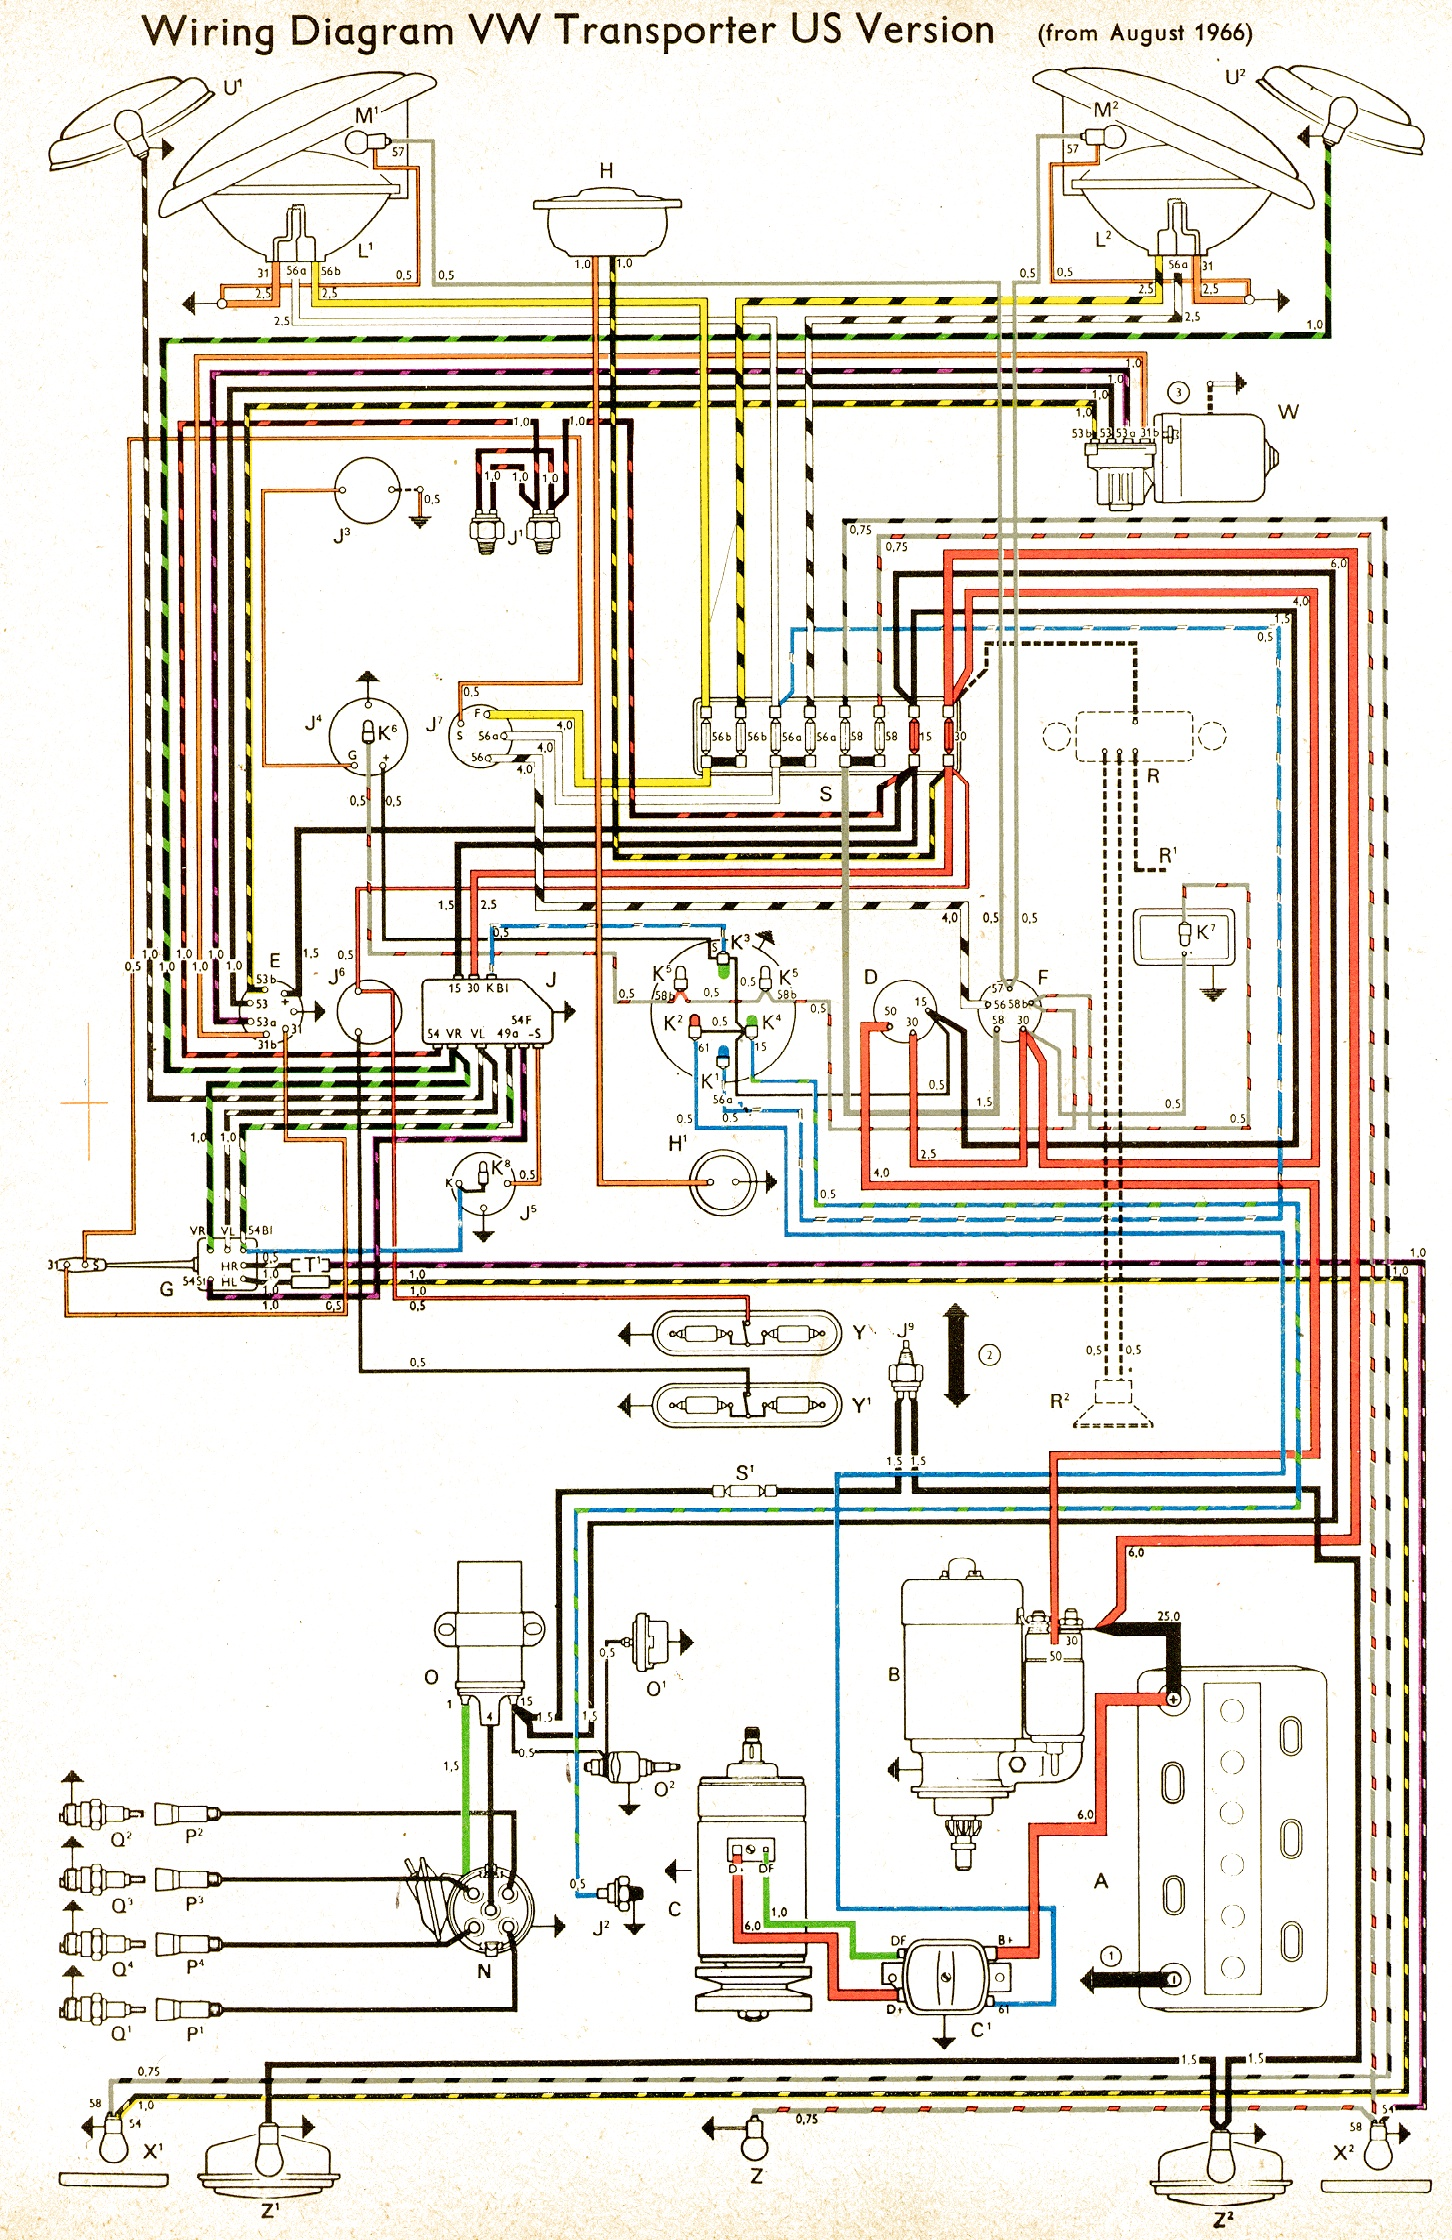 Wiring Diagrams For Headlights On 1990 Vw Westfalia Reveolution Of Headlight Diagram Rh Volkspower Nl